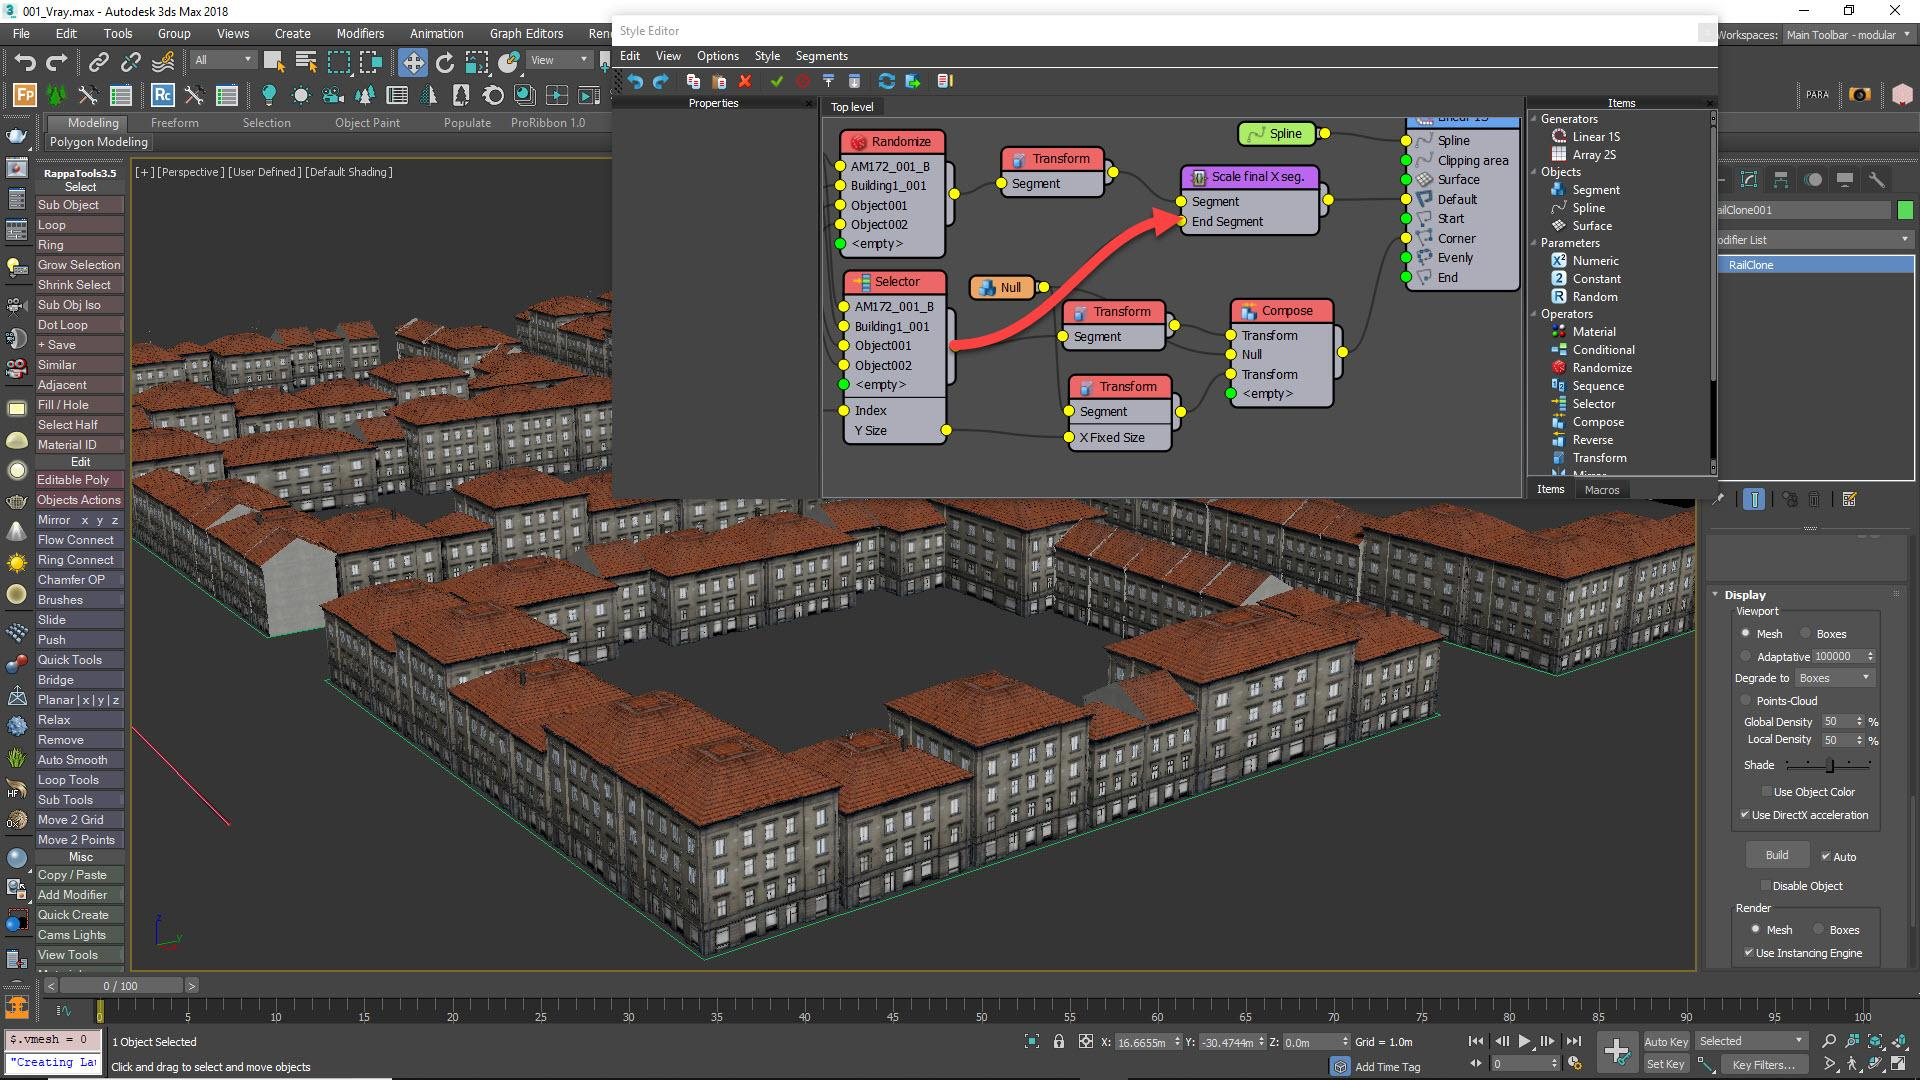 Tutorial - Creating Cityscapes with RailClone in 3ds Max